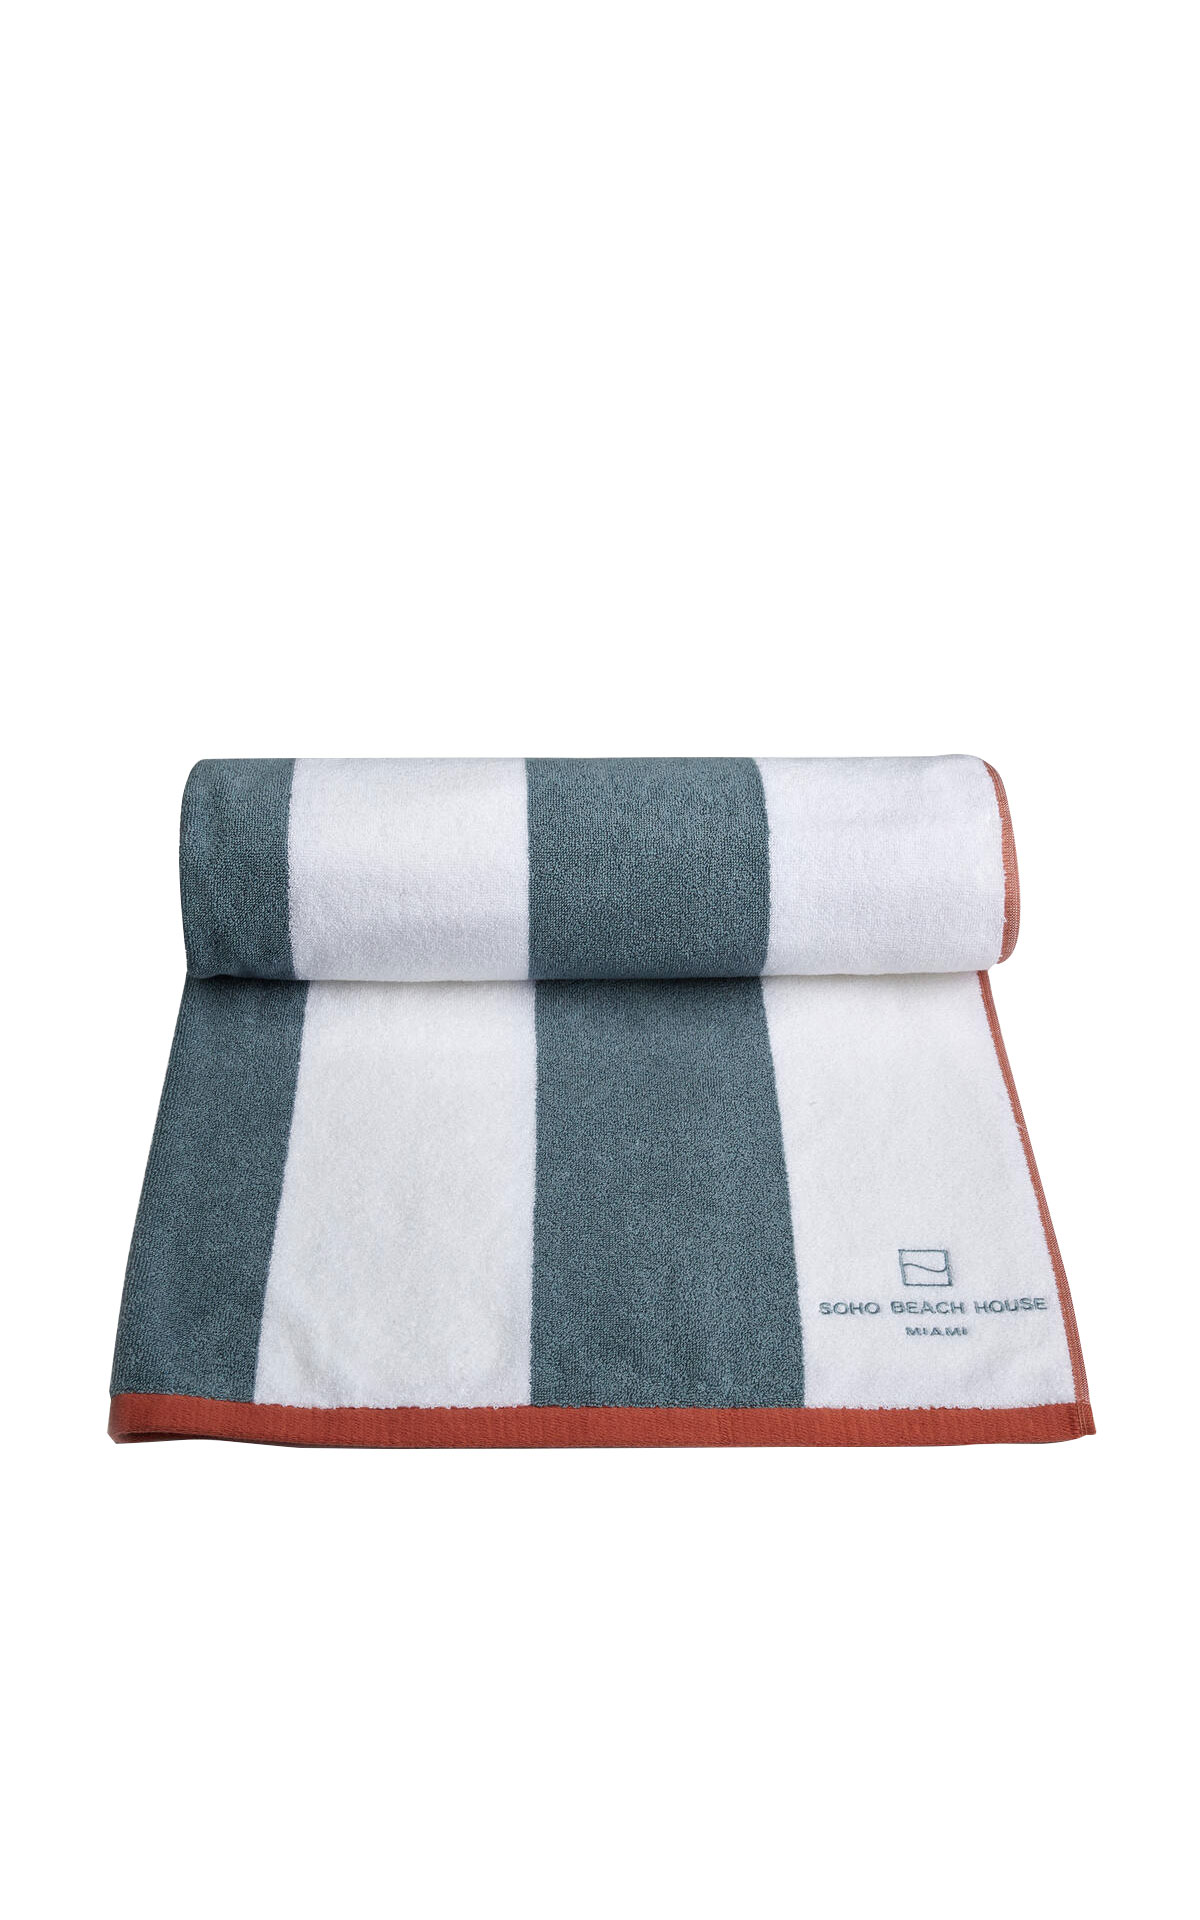 Soho Home House pool towel Miami from Bicester Village